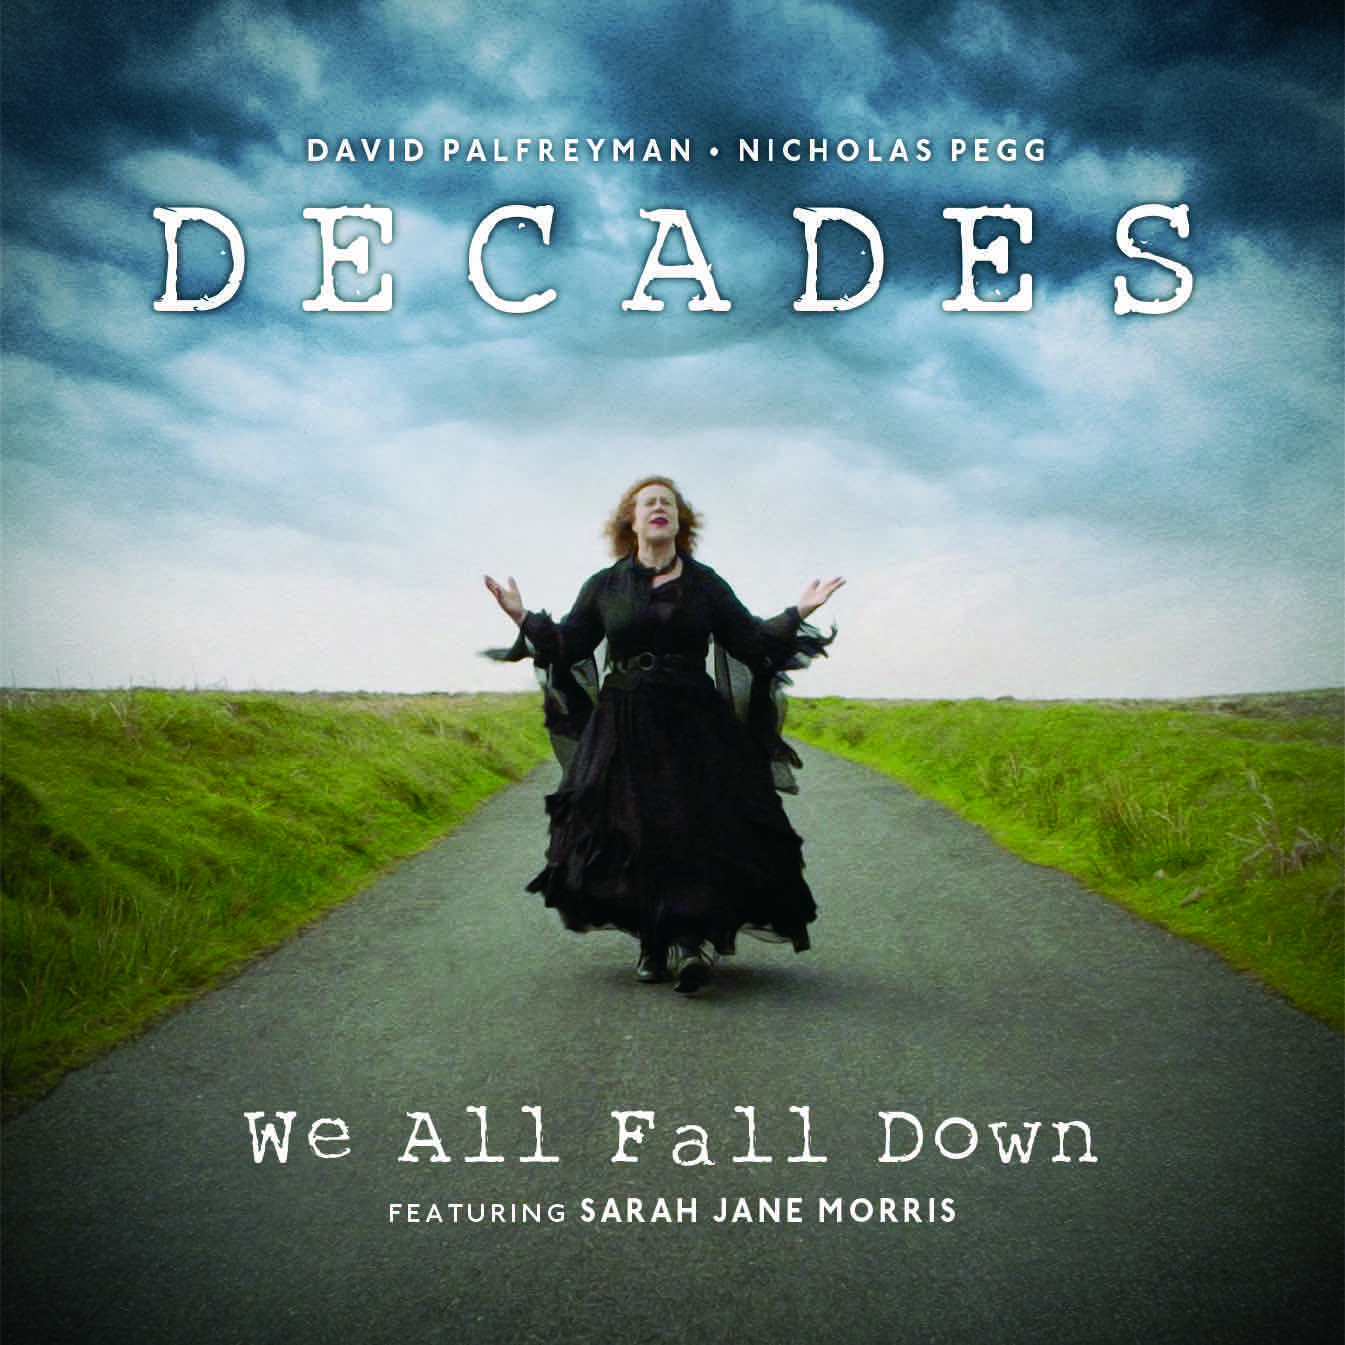 We All Fall Down single cover.jpg